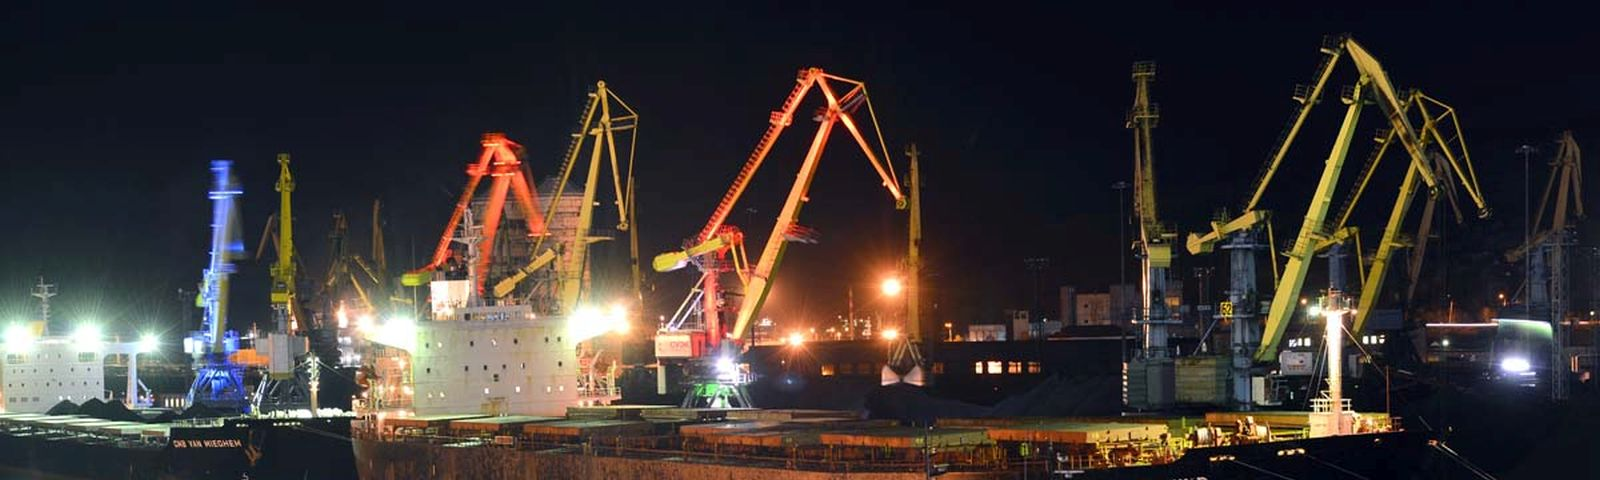 Colourful decorative lighting for port cranes